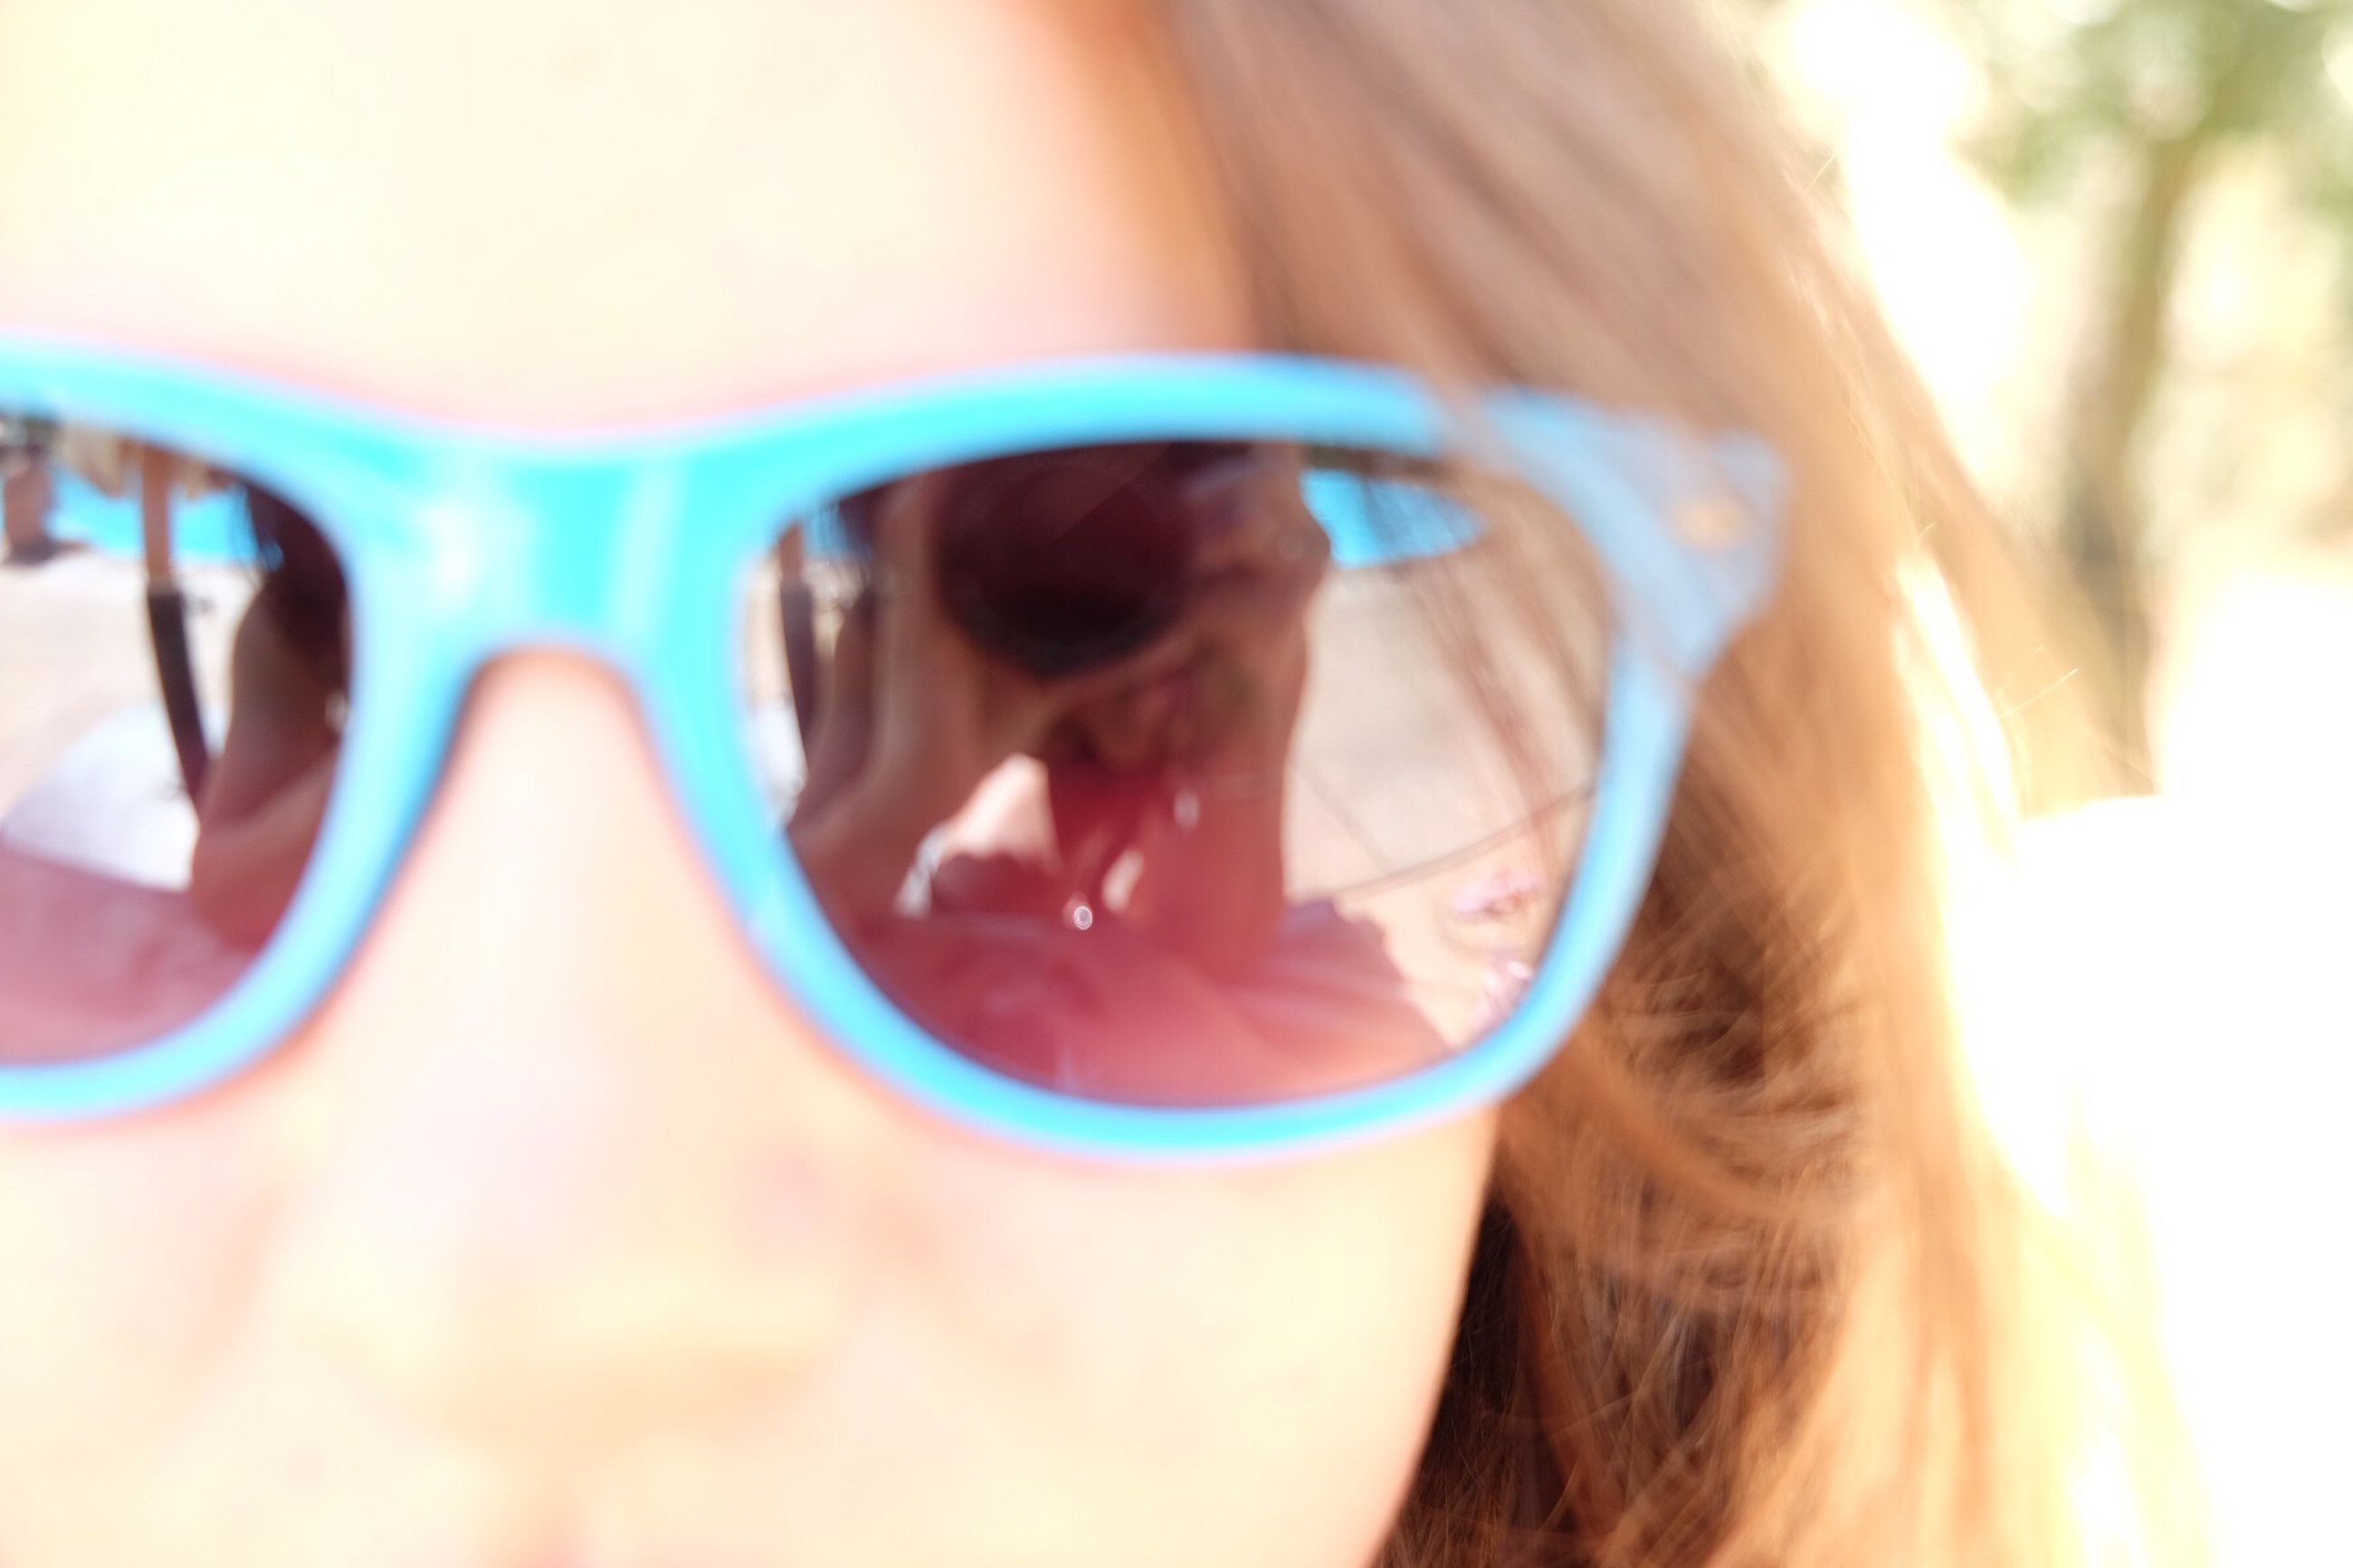 headshot, lifestyles, close-up, leisure activity, person, sunglasses, head and shoulders, portrait, looking at camera, focus on foreground, young adult, young women, indoors, front view, human face, day, girls